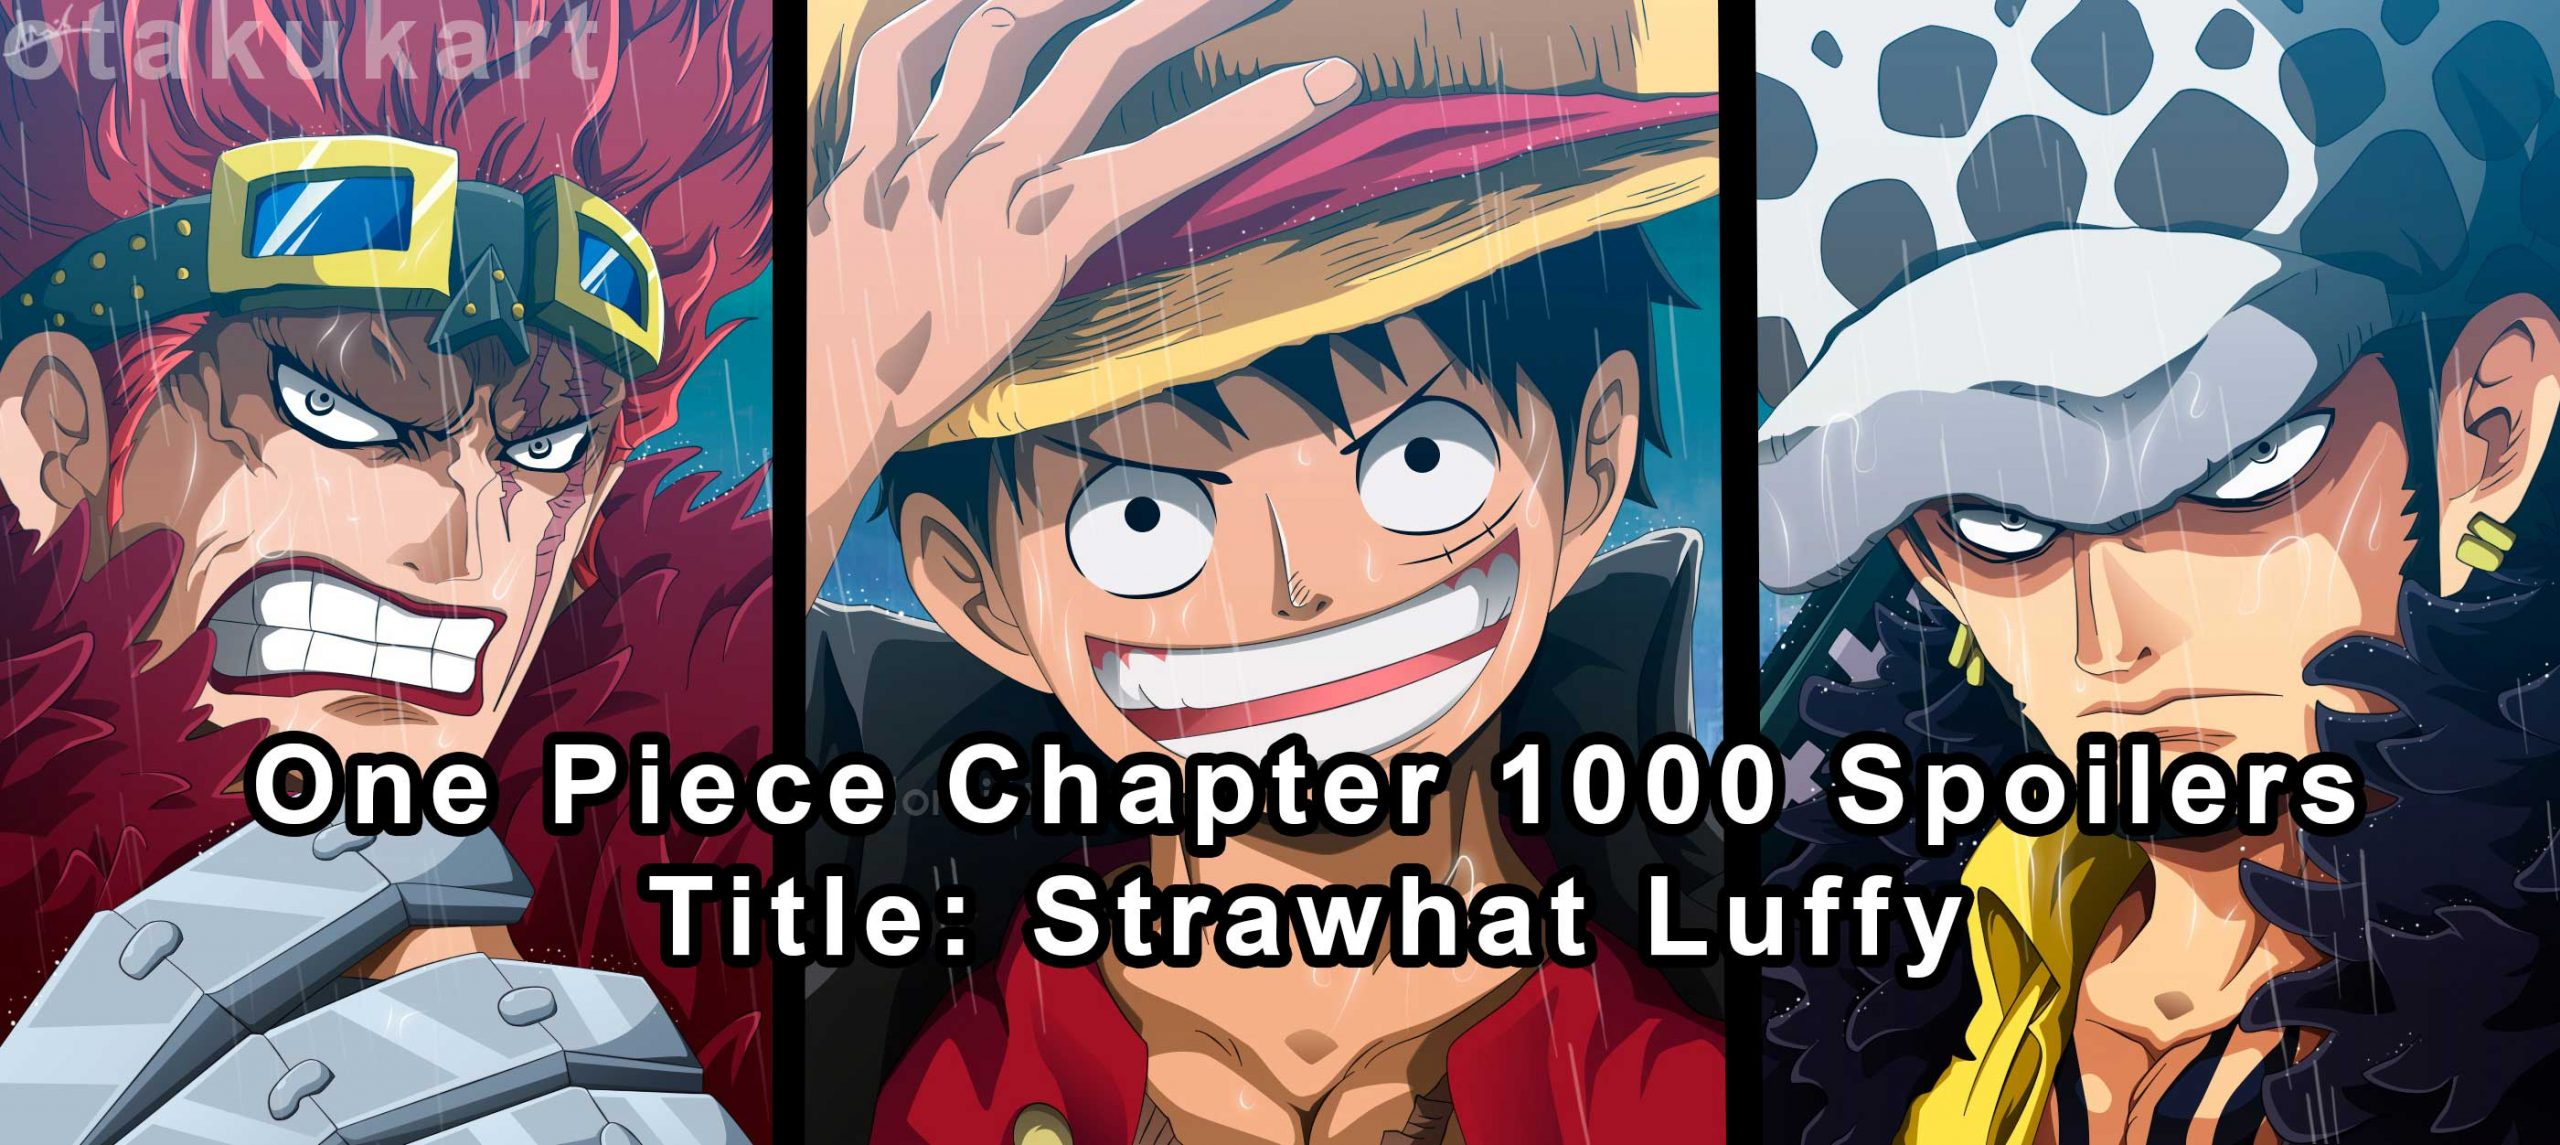 one piece chapter 1000 spoilers